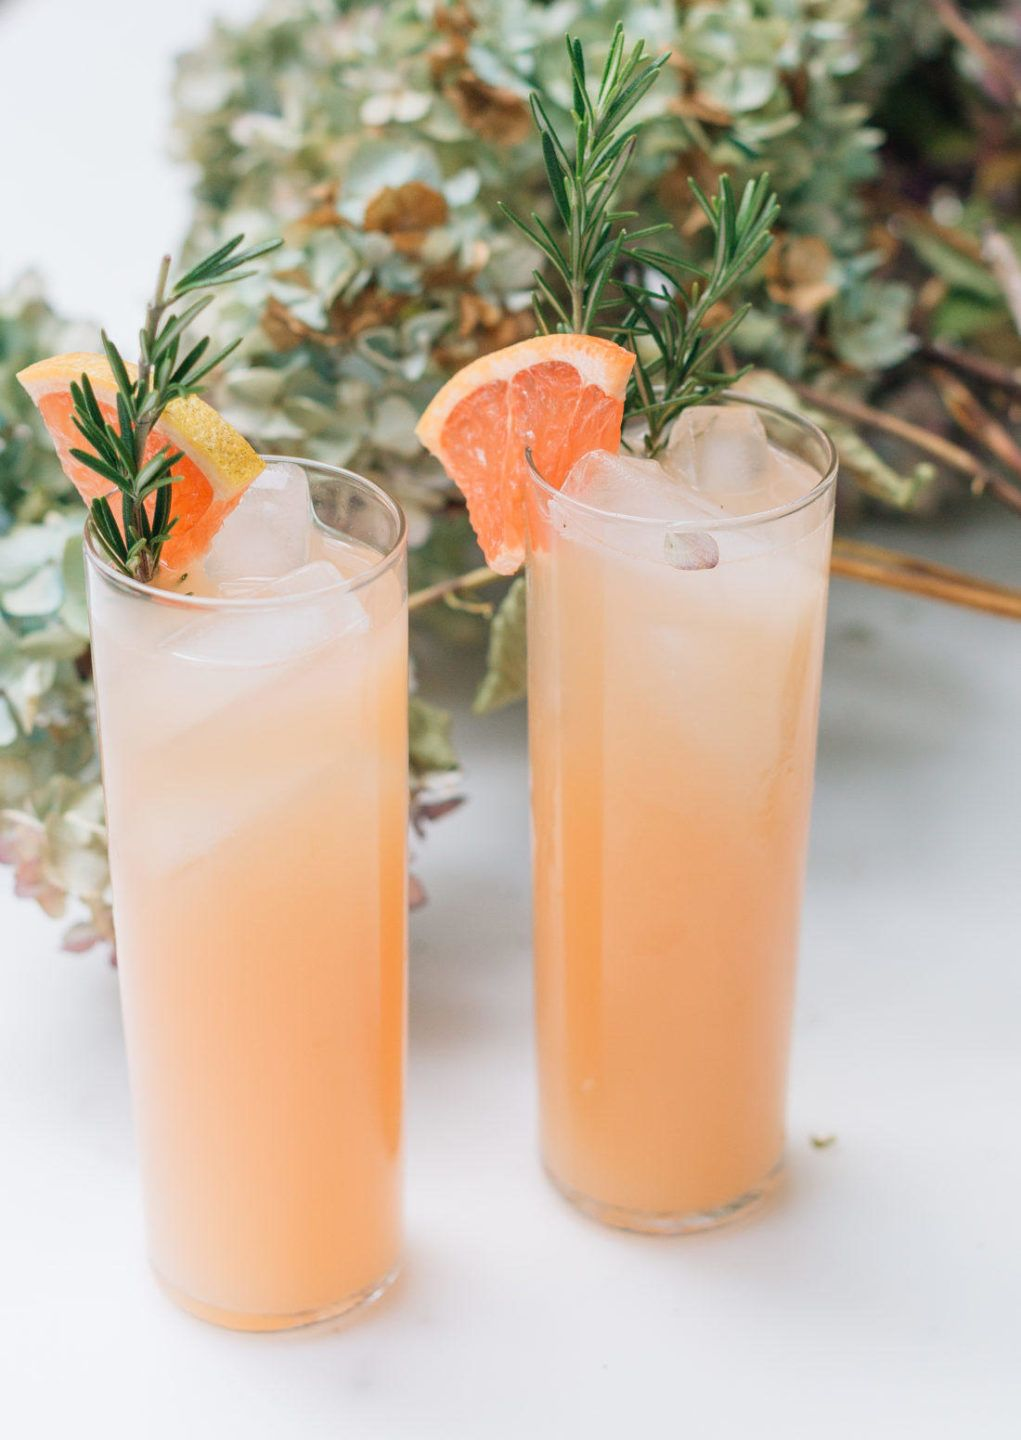 20 Grapefruit Cocktails that Give You Spring Vibes – An Unblurred Lady